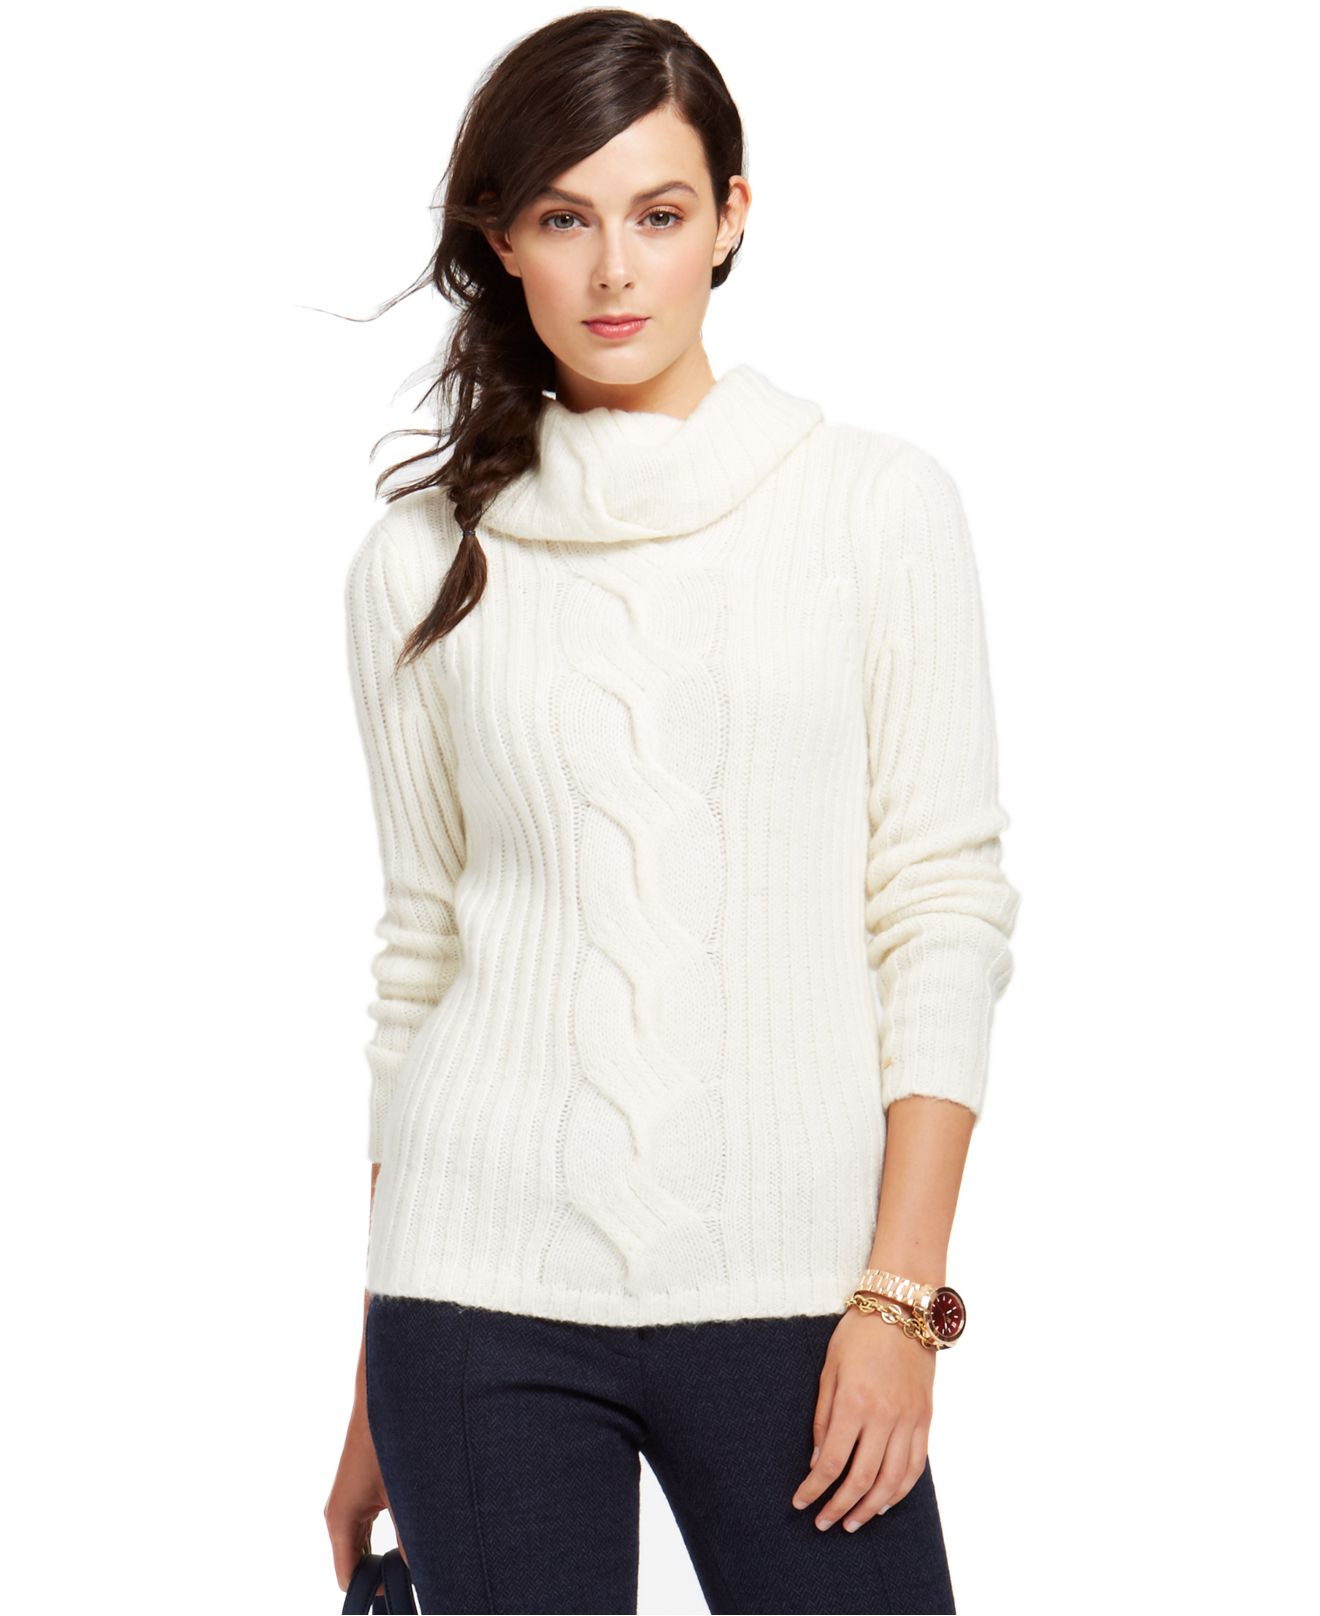 Tommy hilfiger Cable-Knit Cowl-Neck Sweater in White | Lyst